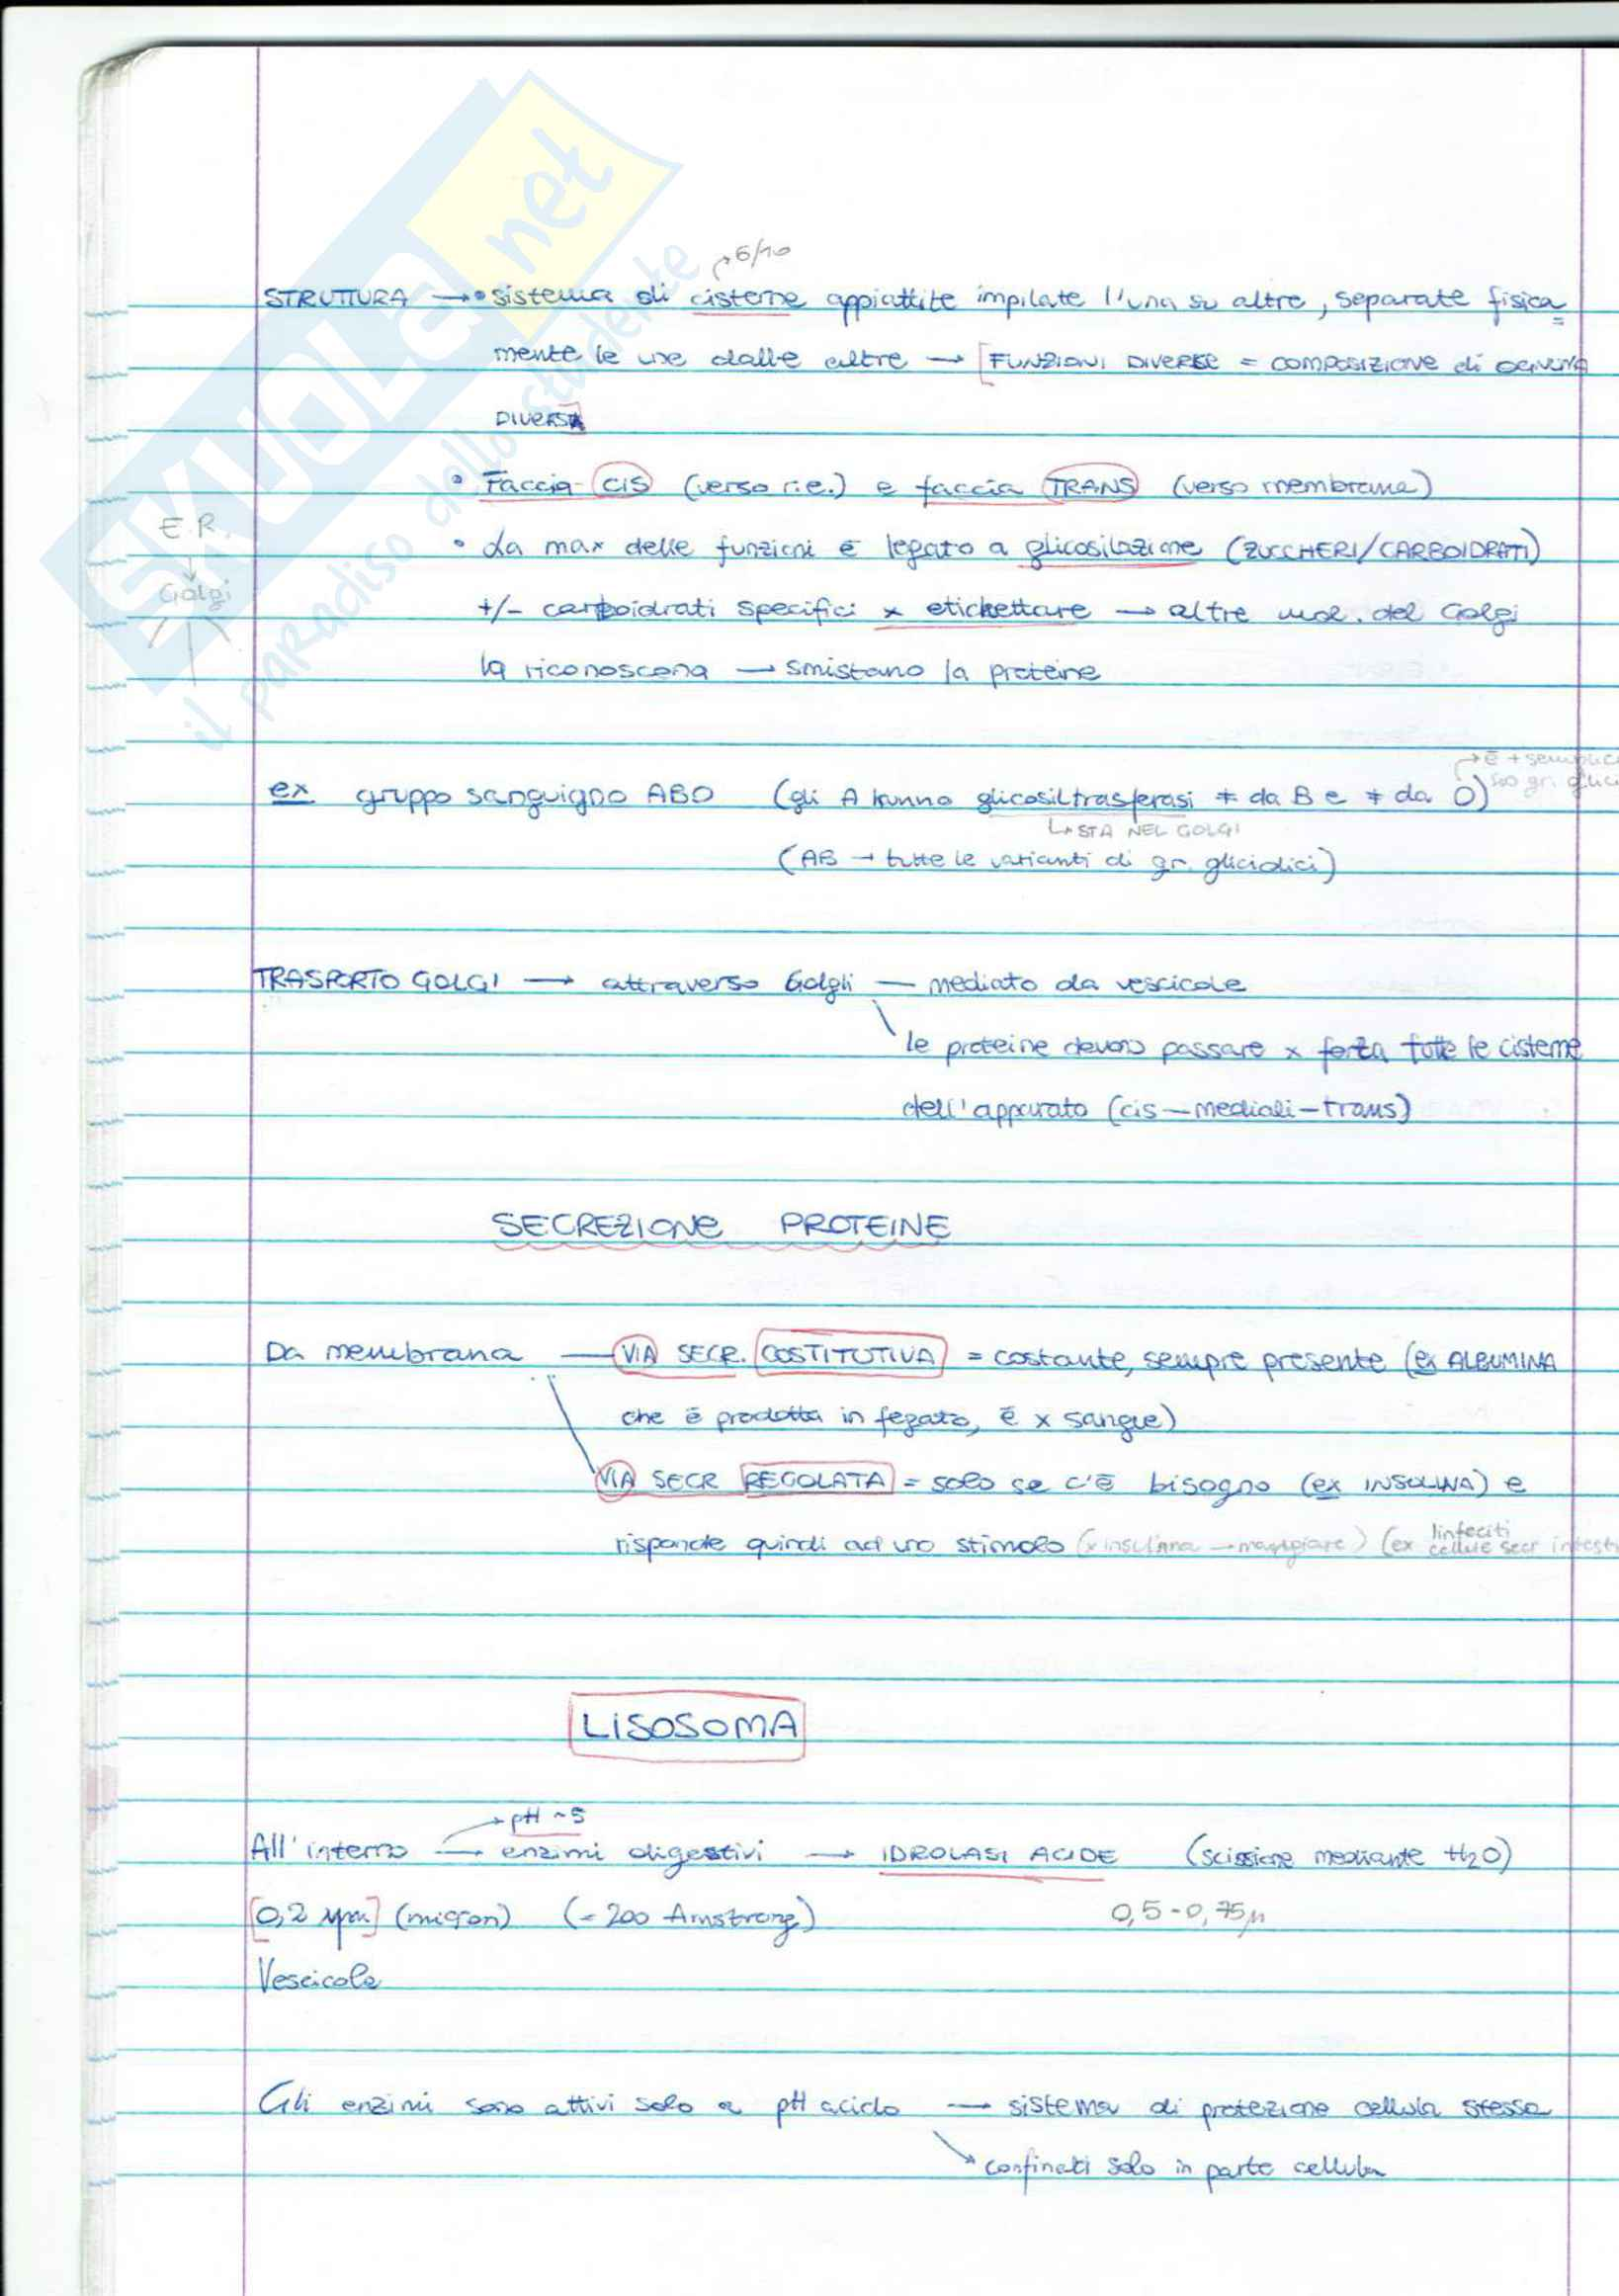 biologia cellulare Pag. 26